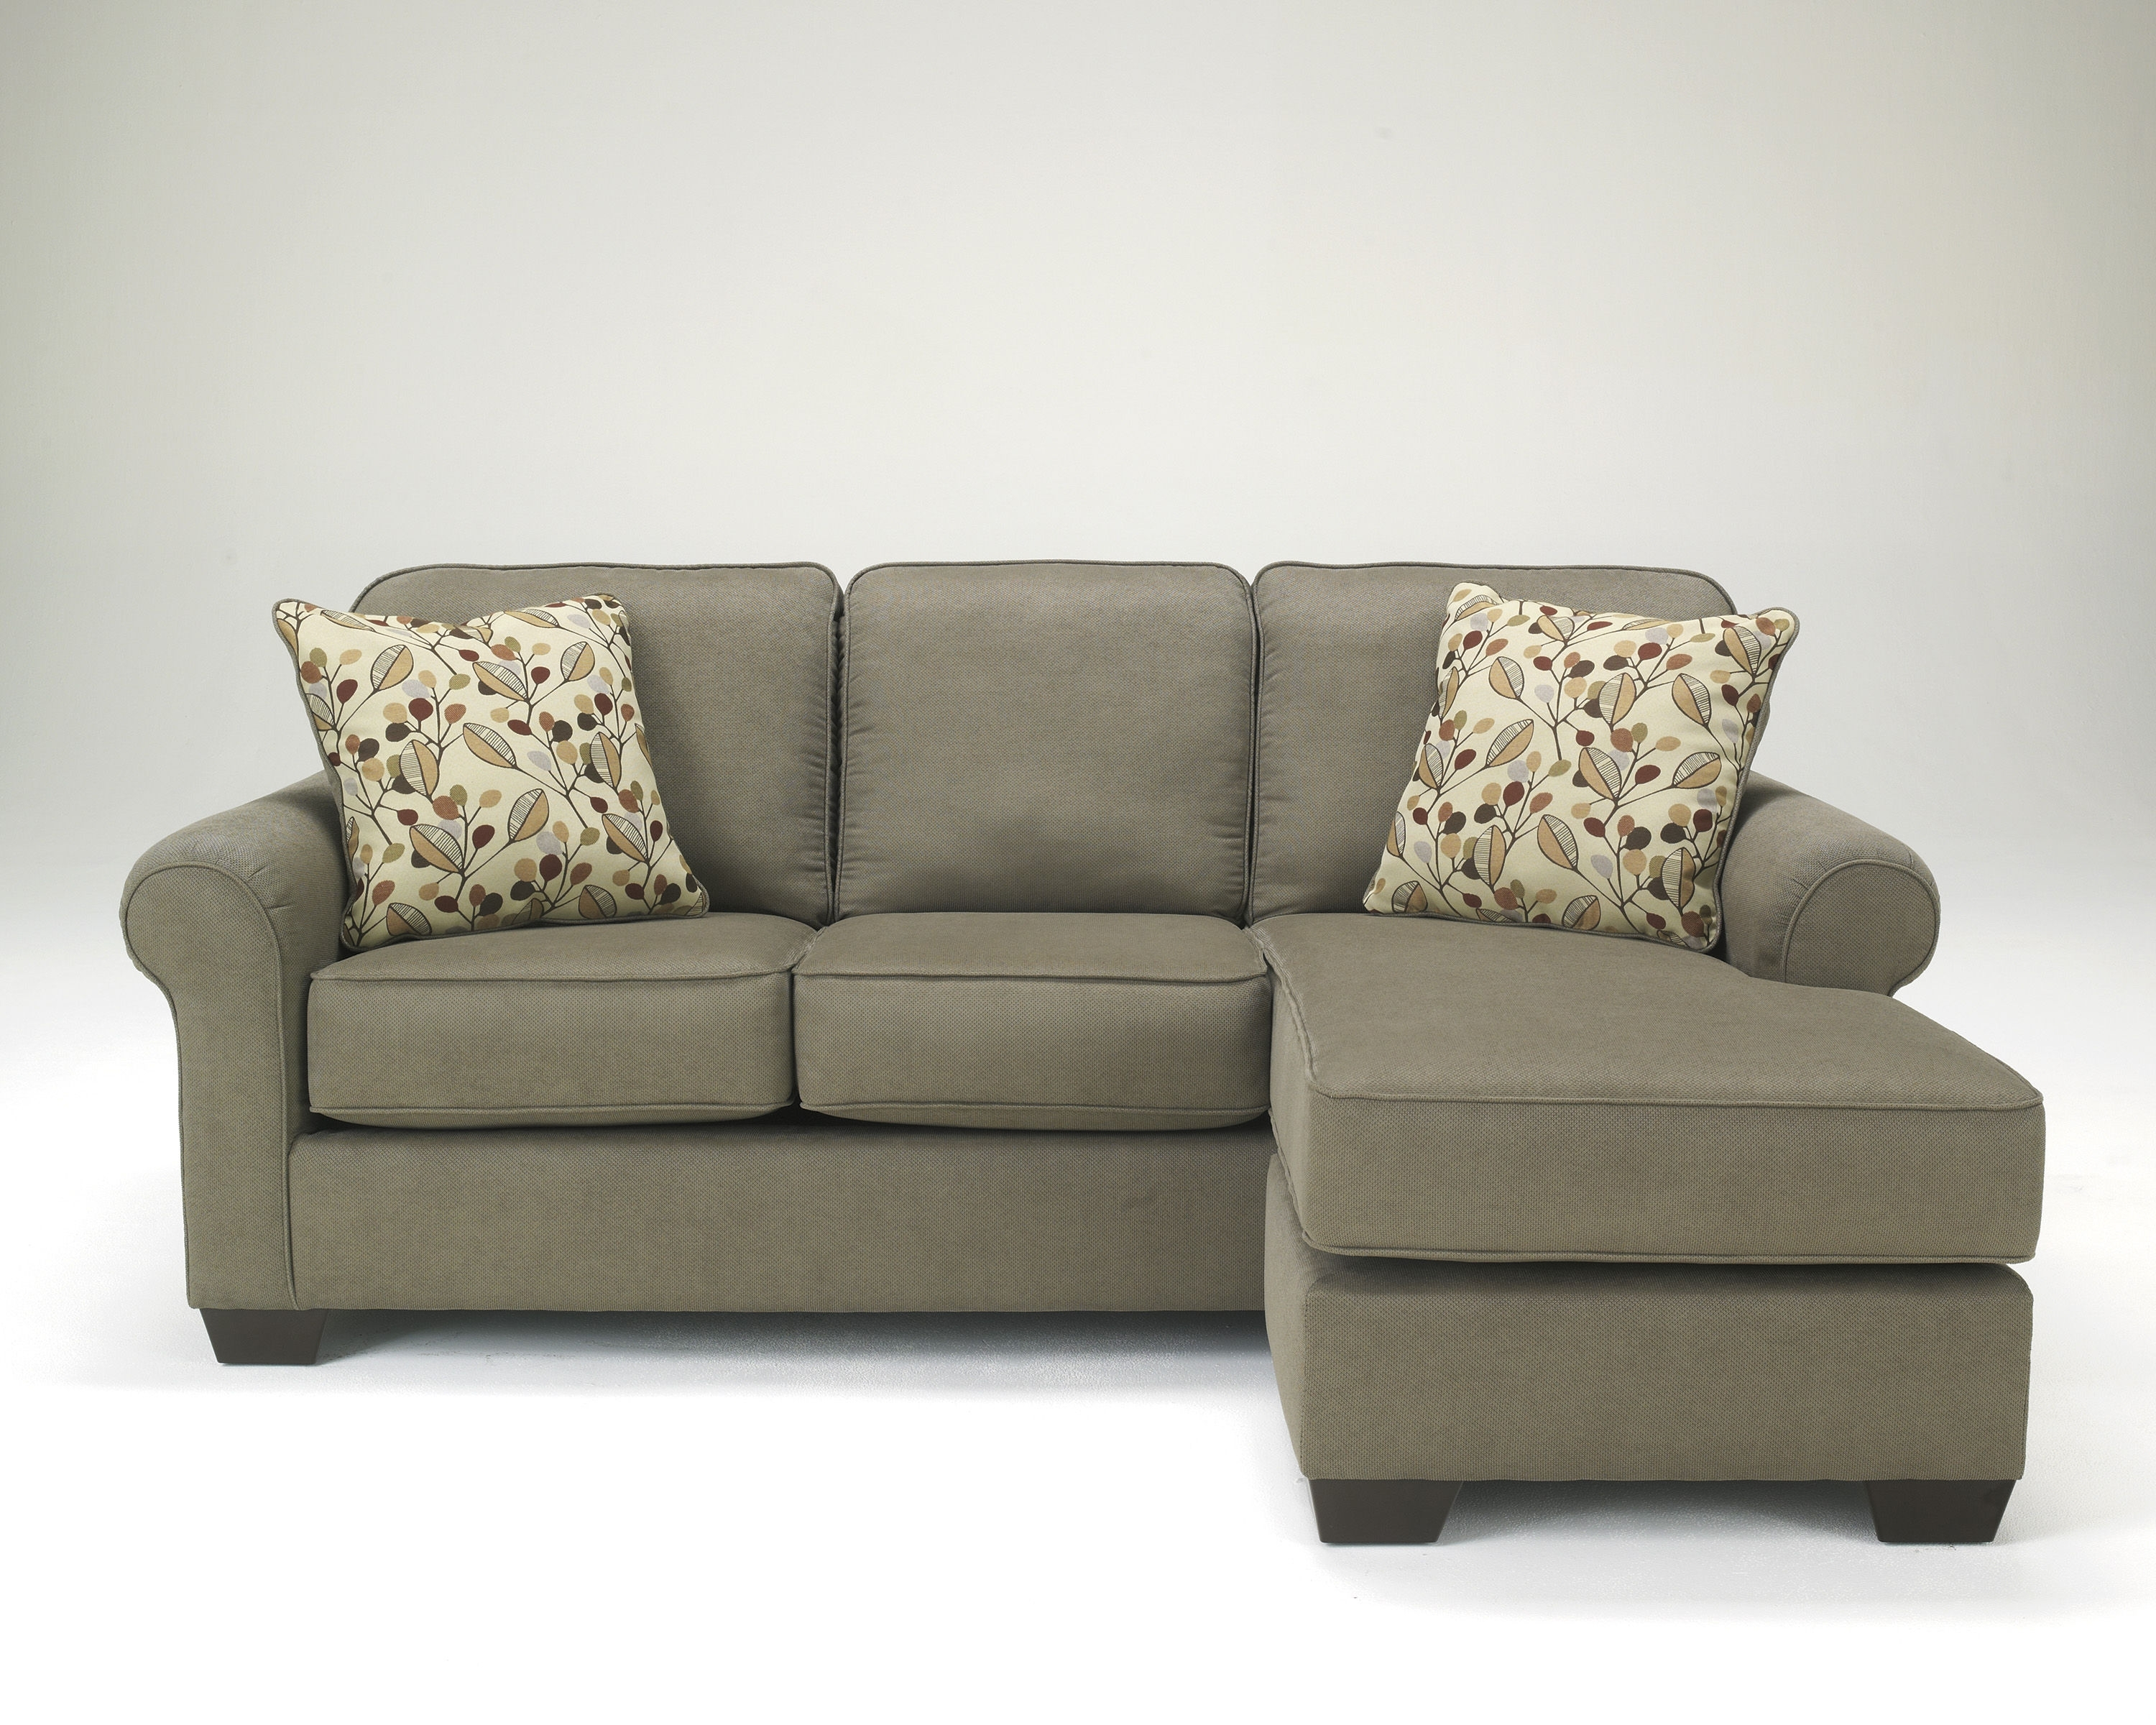 Widely Used Ashley Furniture Danely Dusk Sofa Chaise Sectional (View 5 of 15)